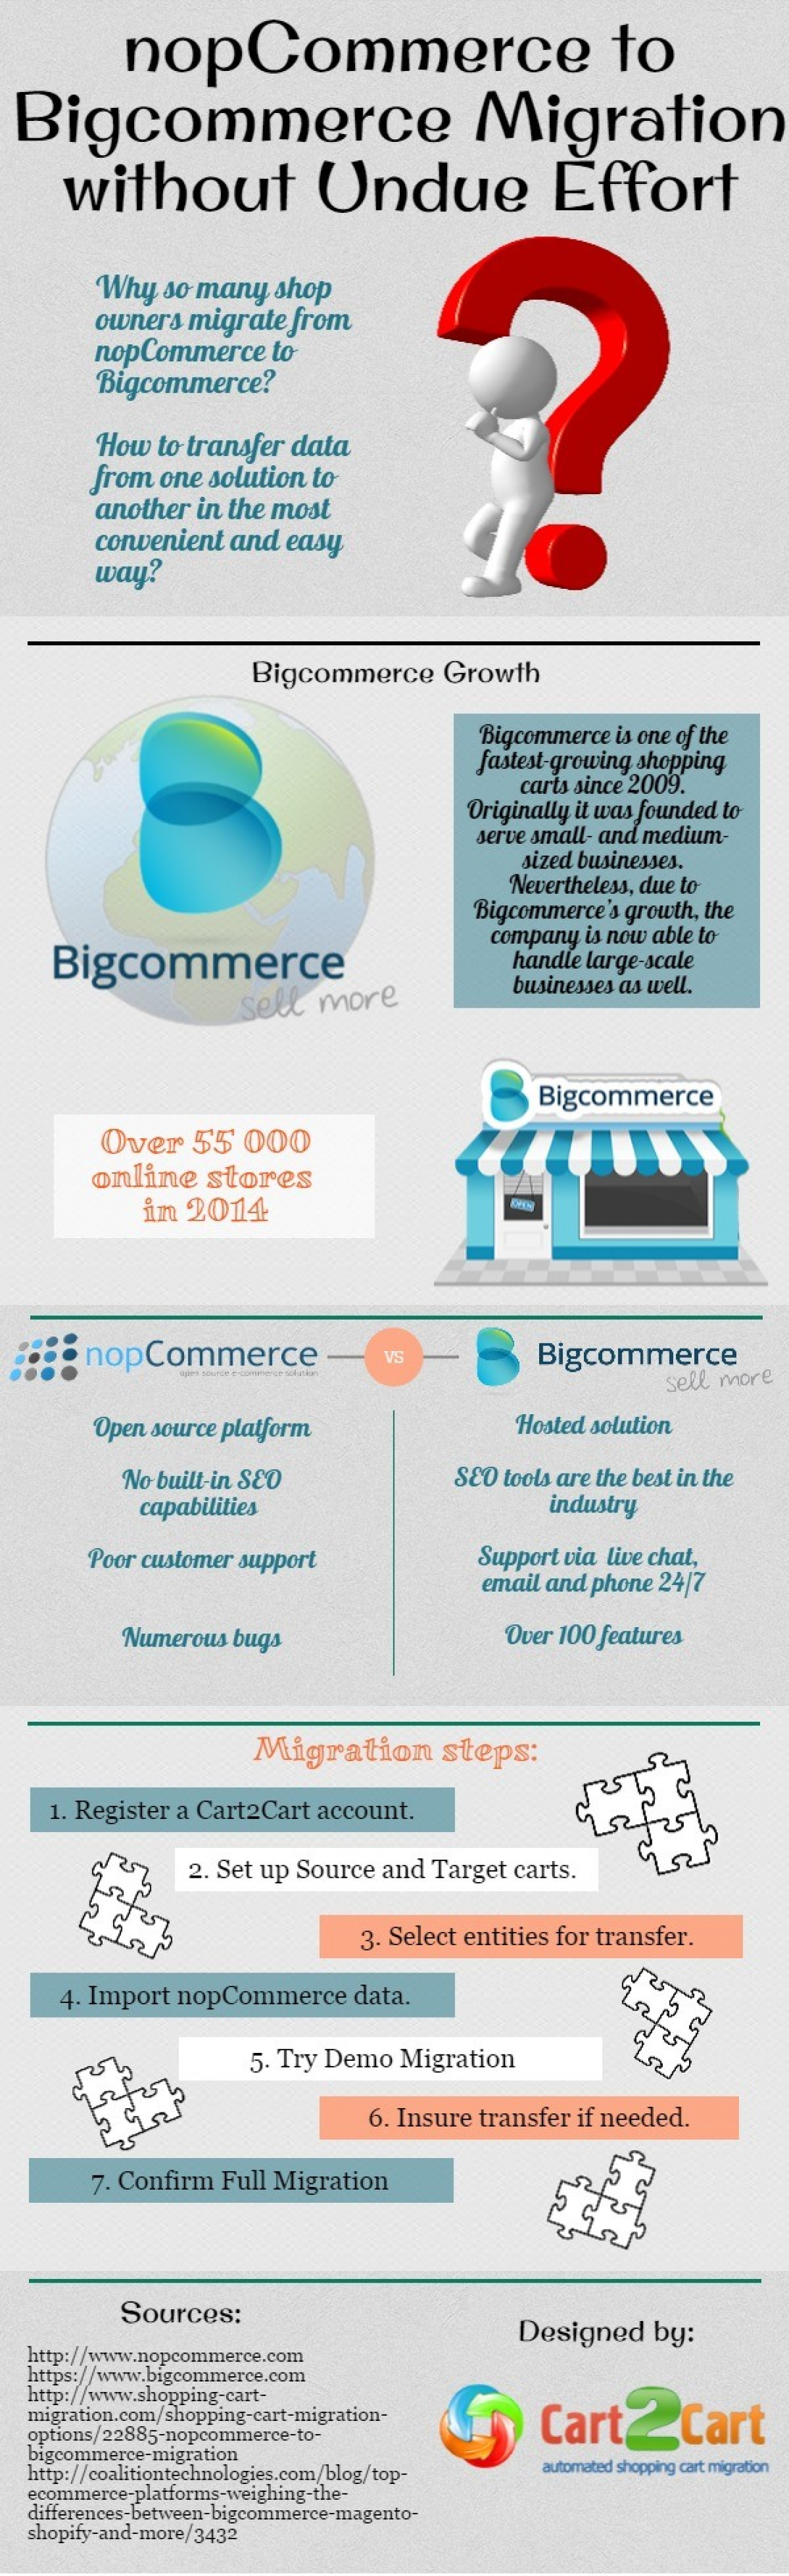 NopCommerce to Bigcommerce Migration without Undue Effort  Infographic